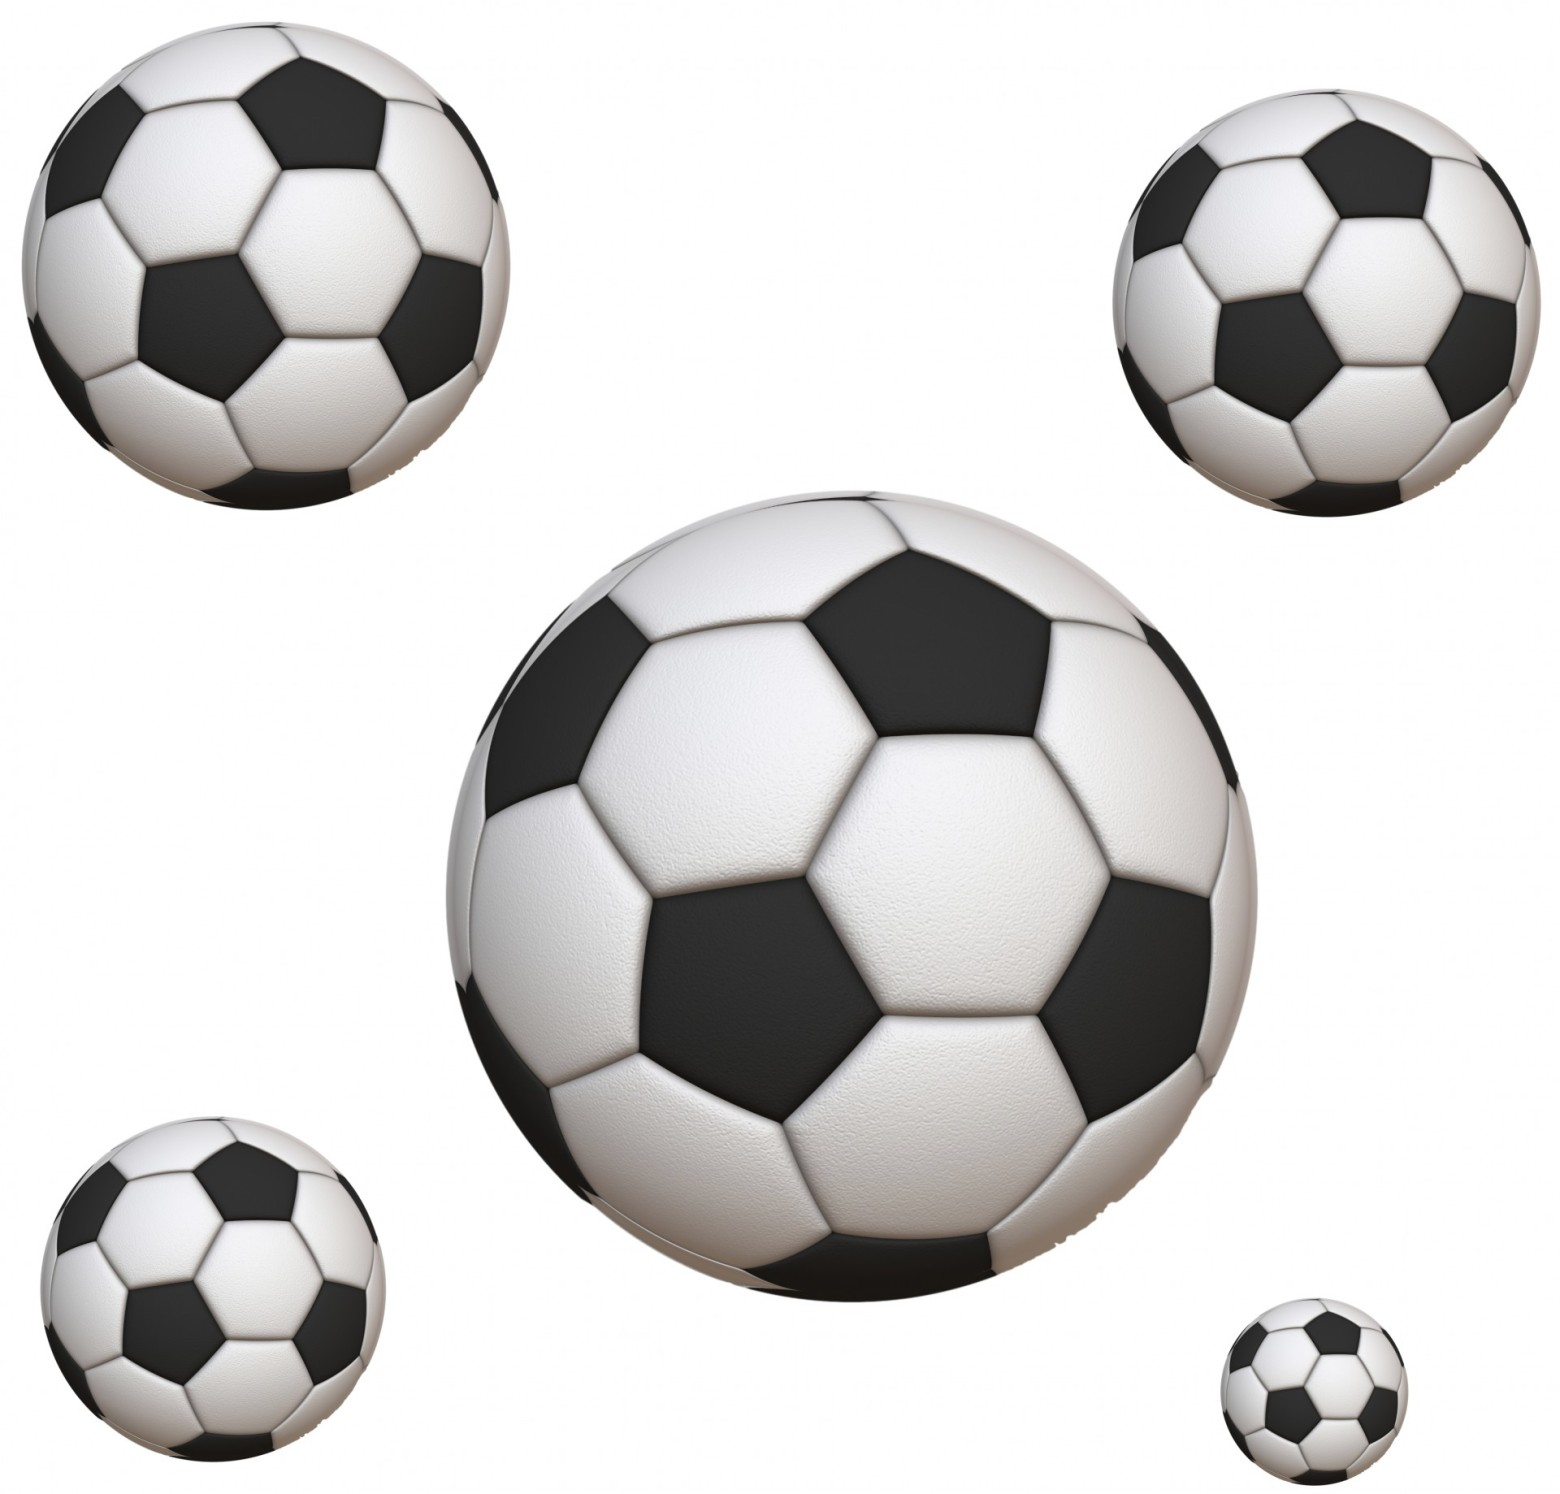 ballon de football ballon football sport terrain foot match but images gratuites et. Black Bedroom Furniture Sets. Home Design Ideas